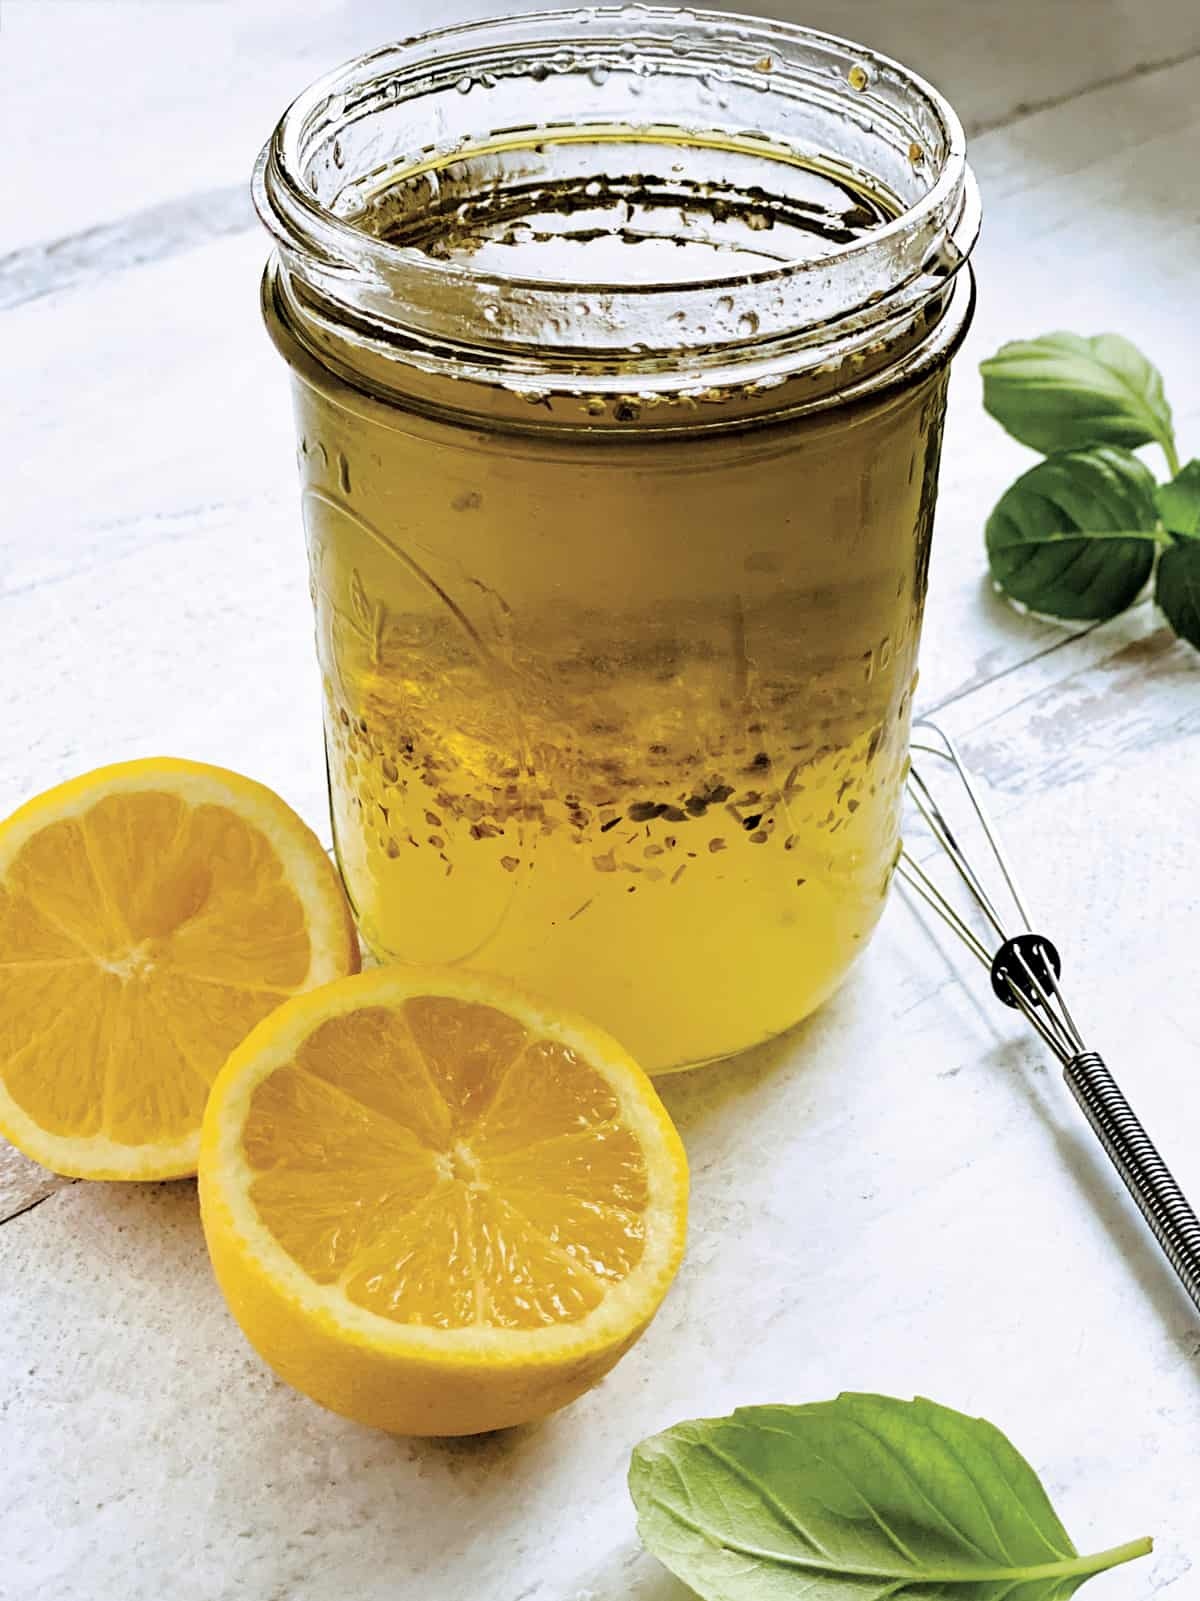 A glass jar with lemon and olive oil dressing-ladolemono, two lemon halves, a whisk and some fresh basil.